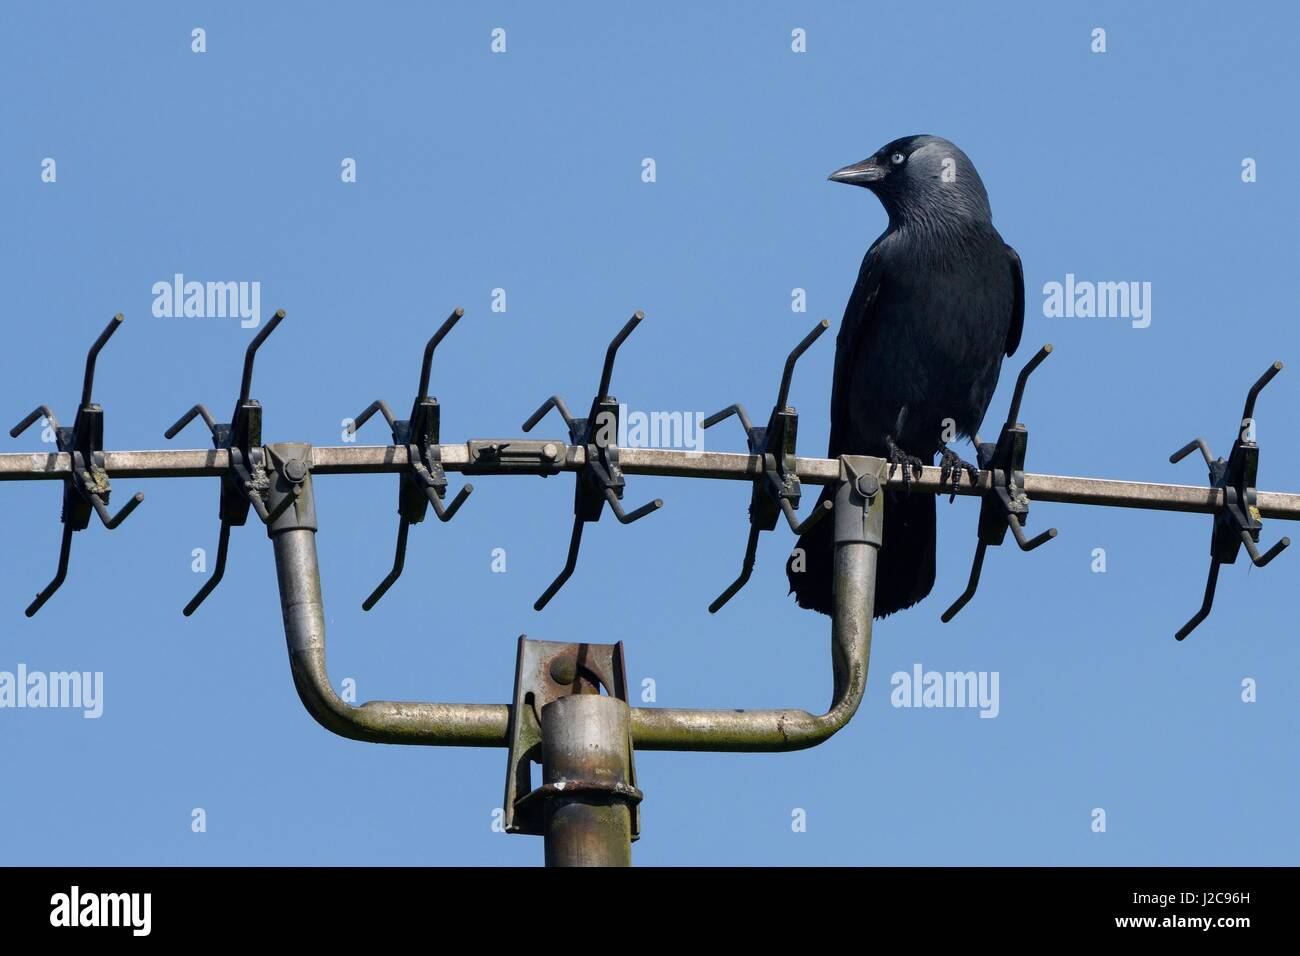 Jackdaw (Corvus monedula) perched on a TV aerial, Wiltshire, UK, April. - Stock Image